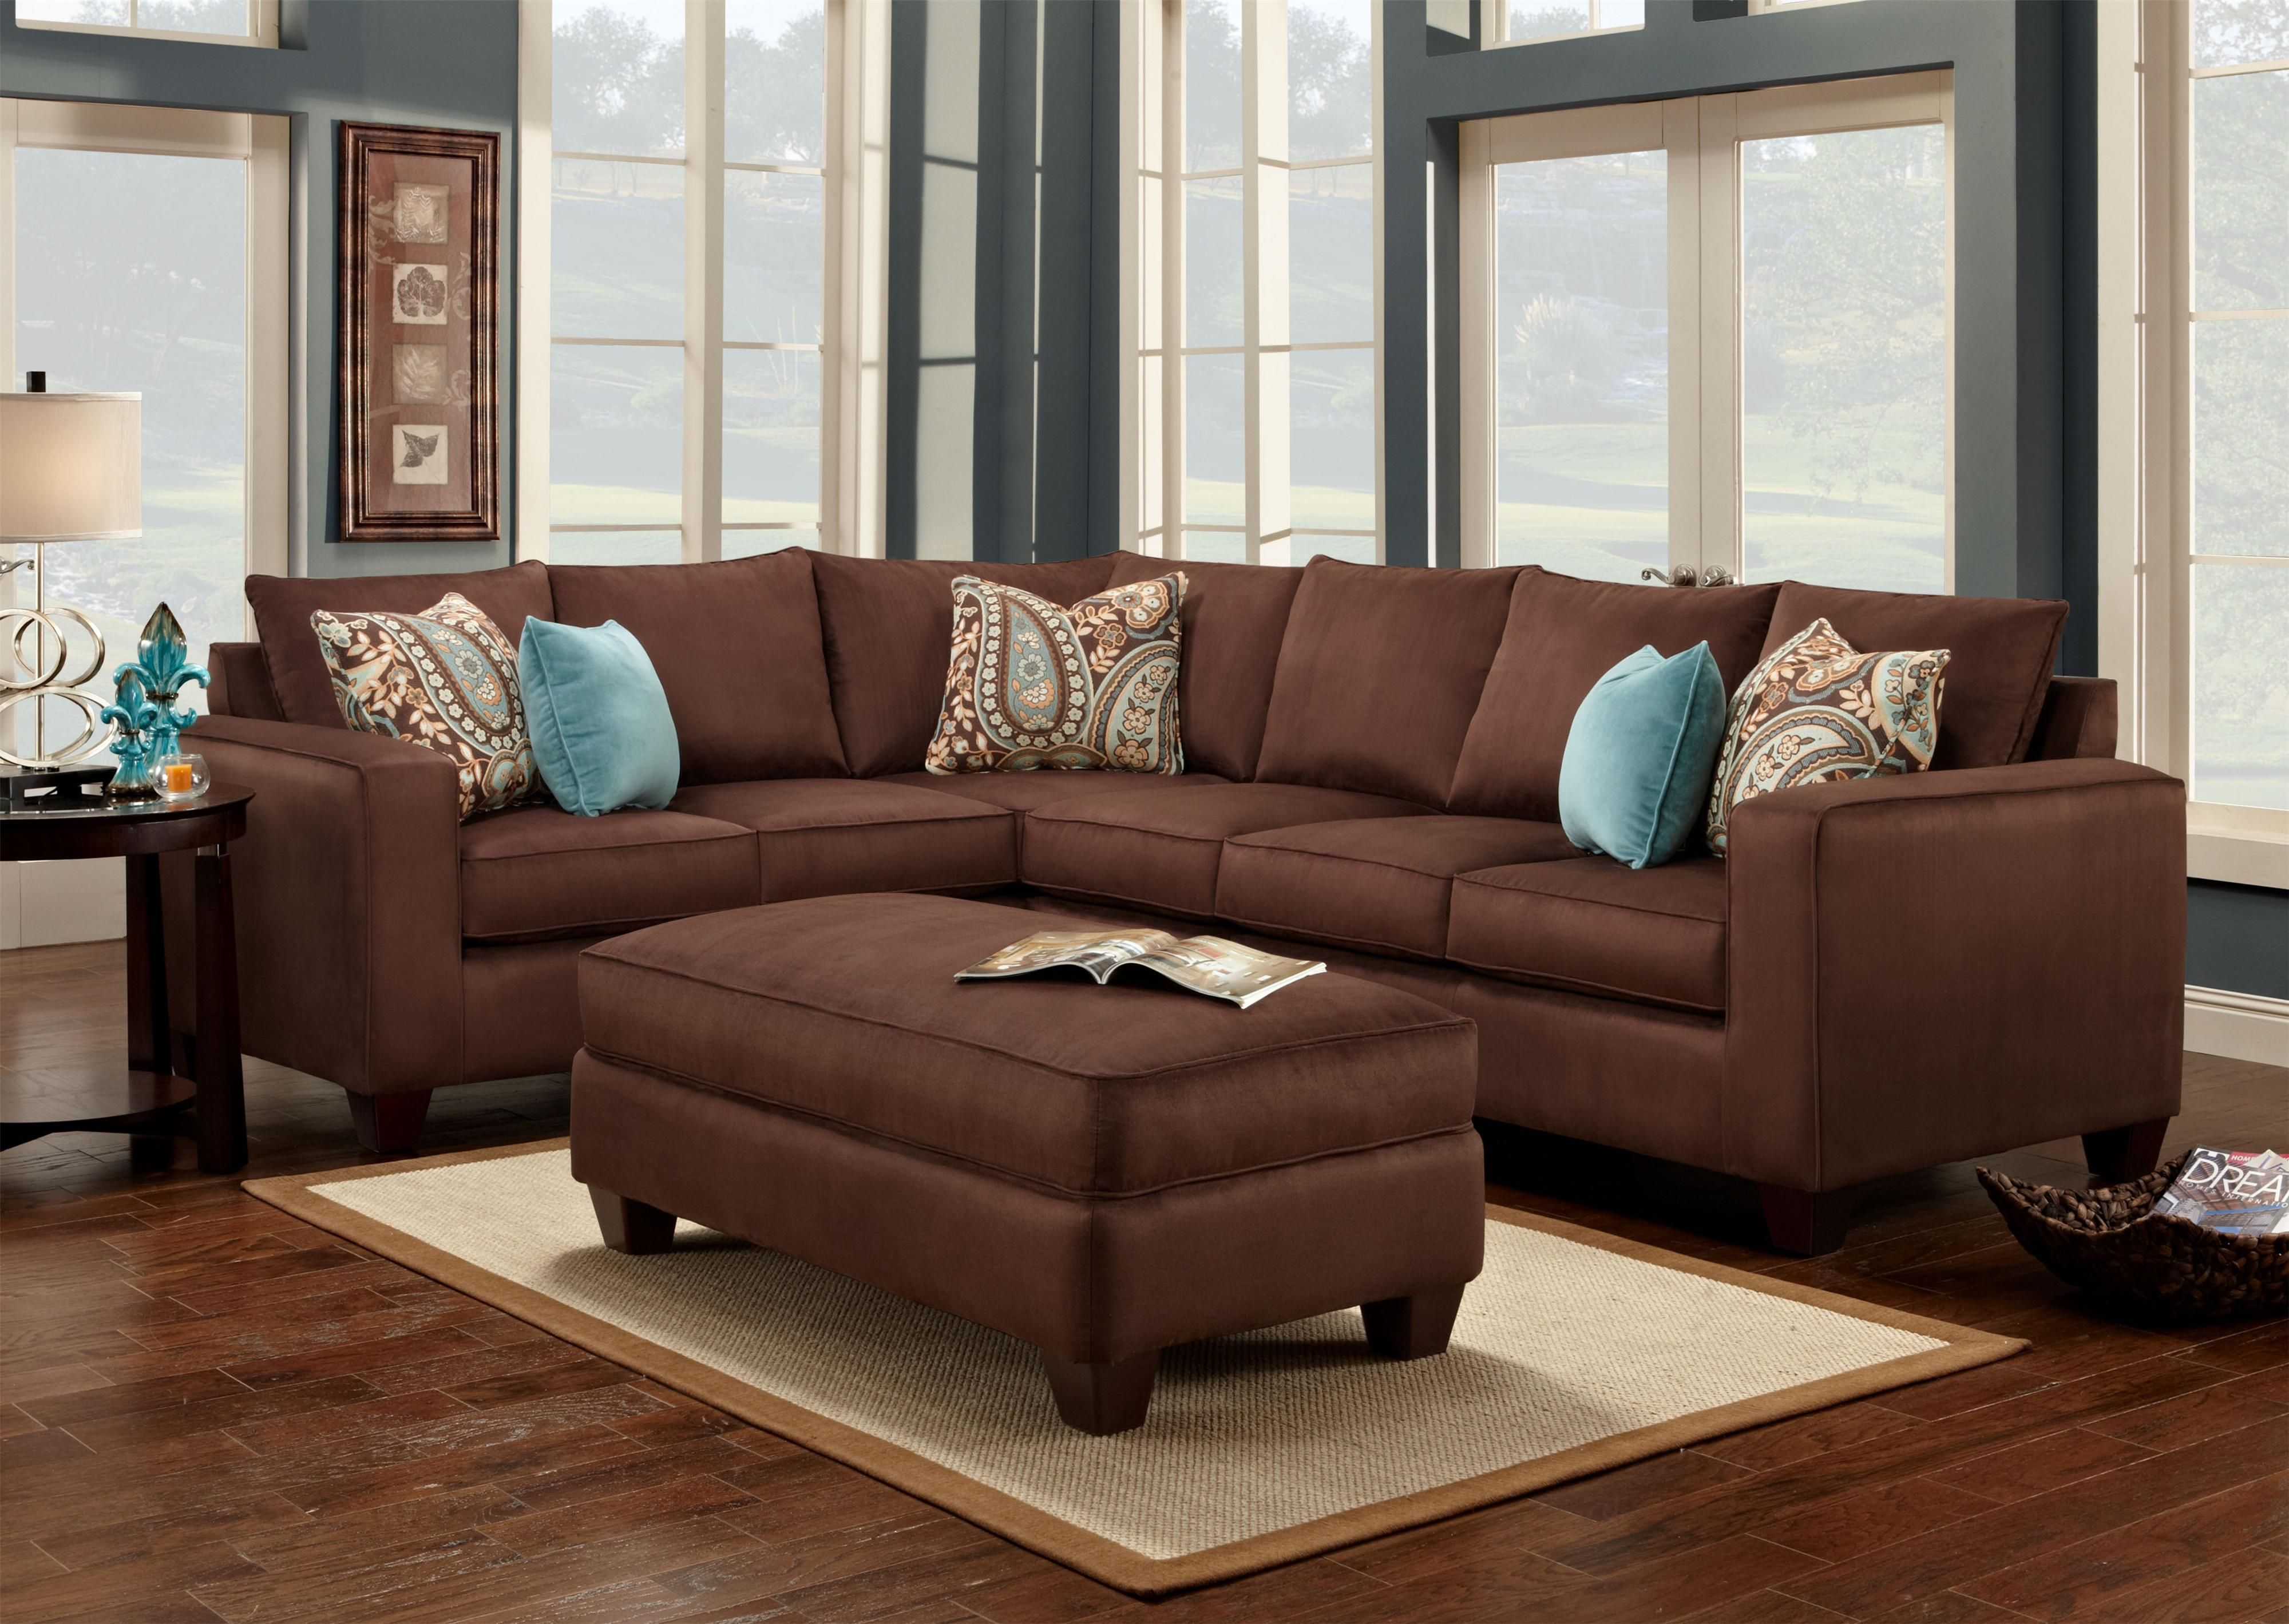 Turquoise Is A Great Accent Color To Chocolate Brown! #accent #pillows #sofa